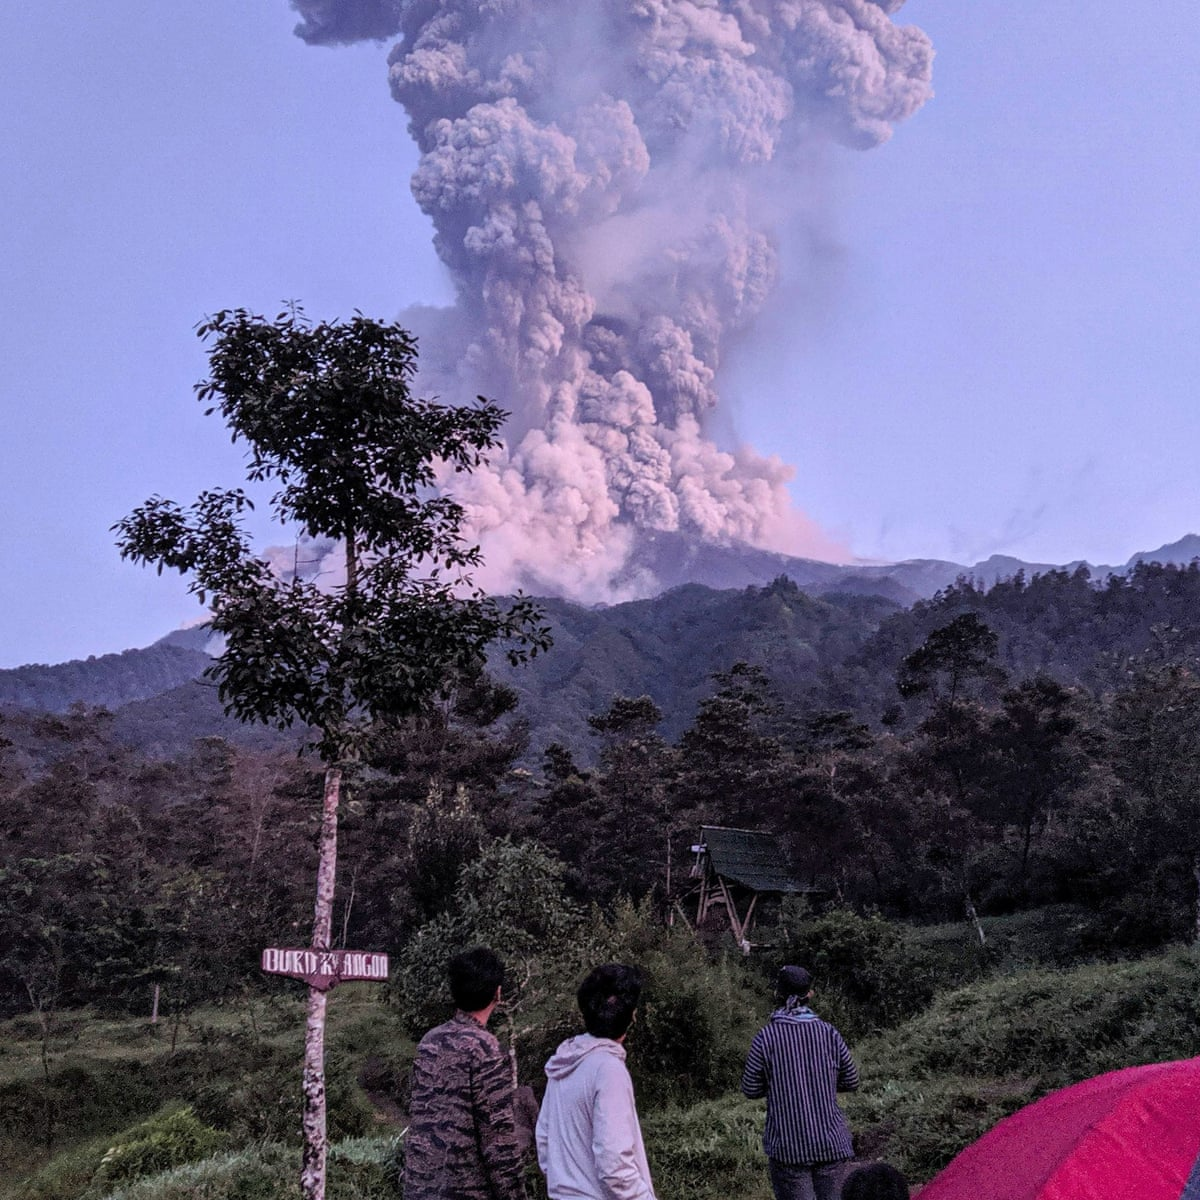 Indonesia's most active volcano erupts